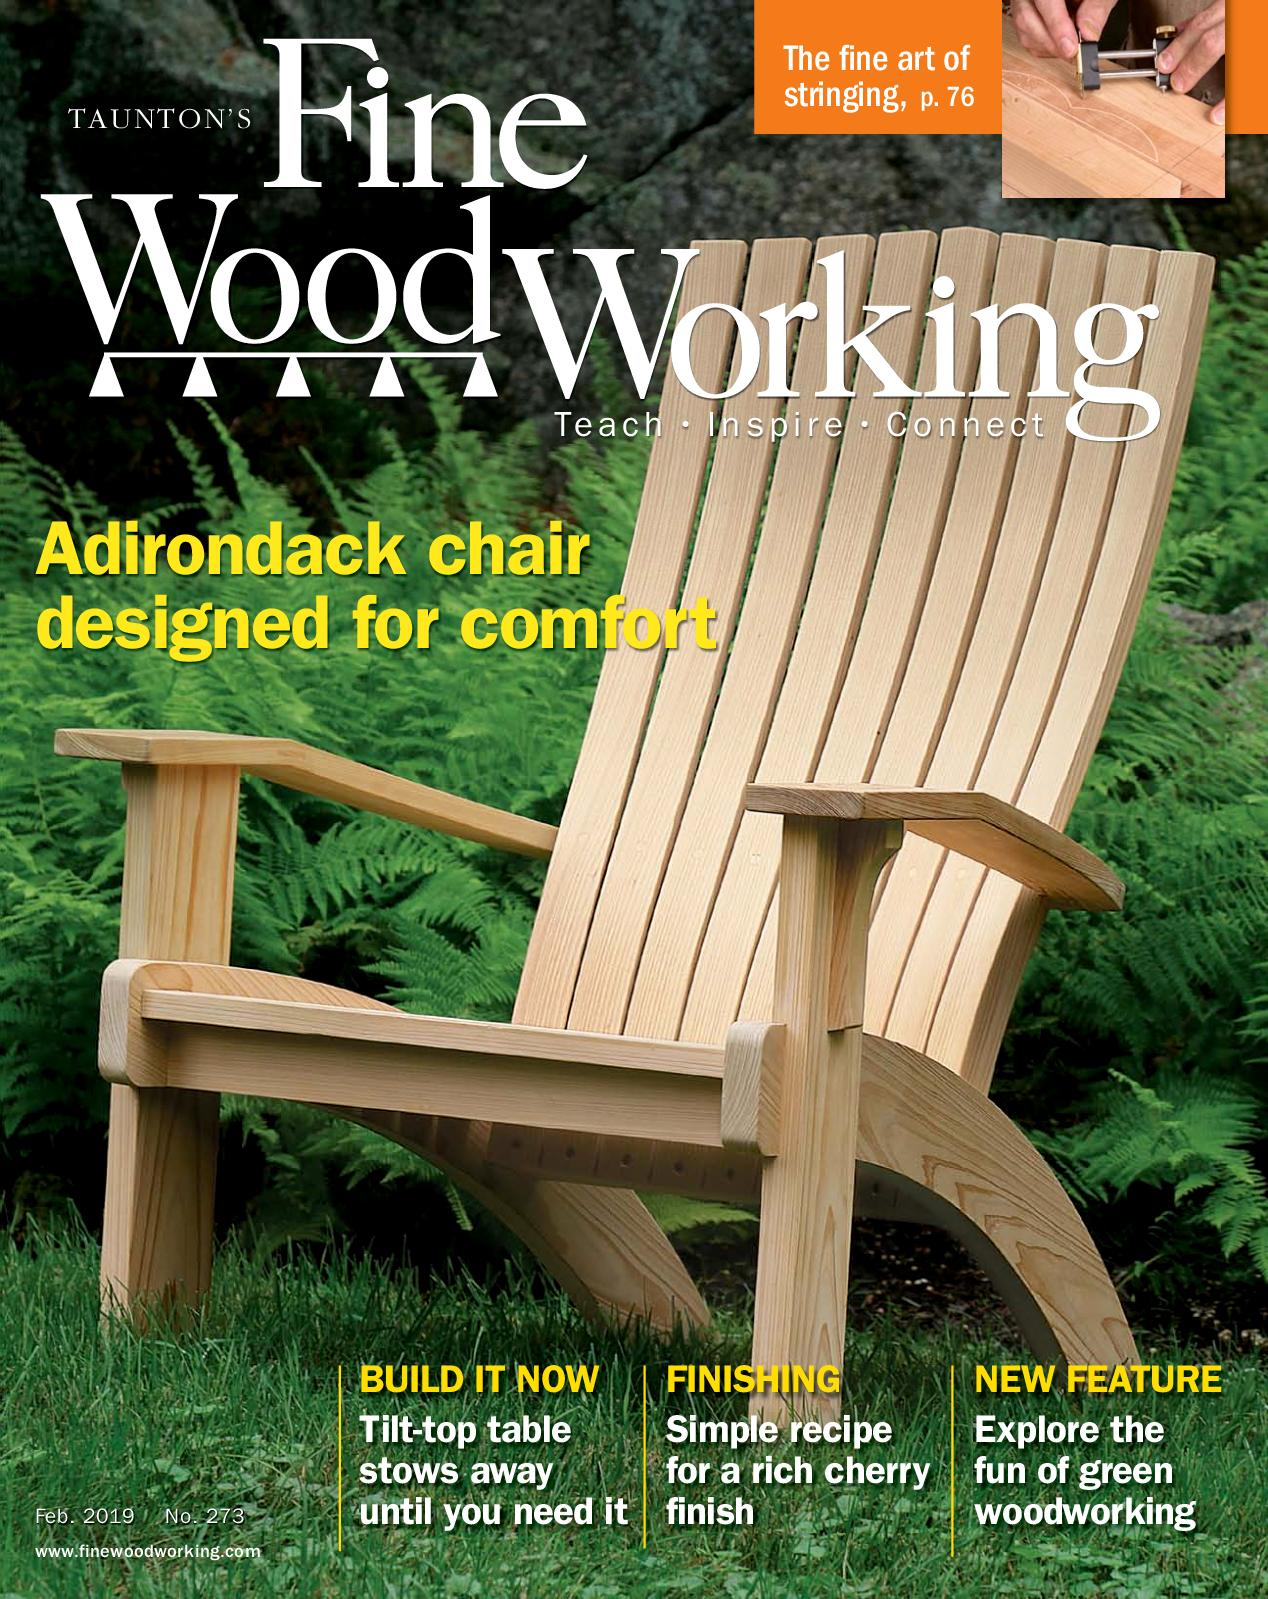 Fine Woodworking Magazine, Issue No. 273, Feb/March 2019